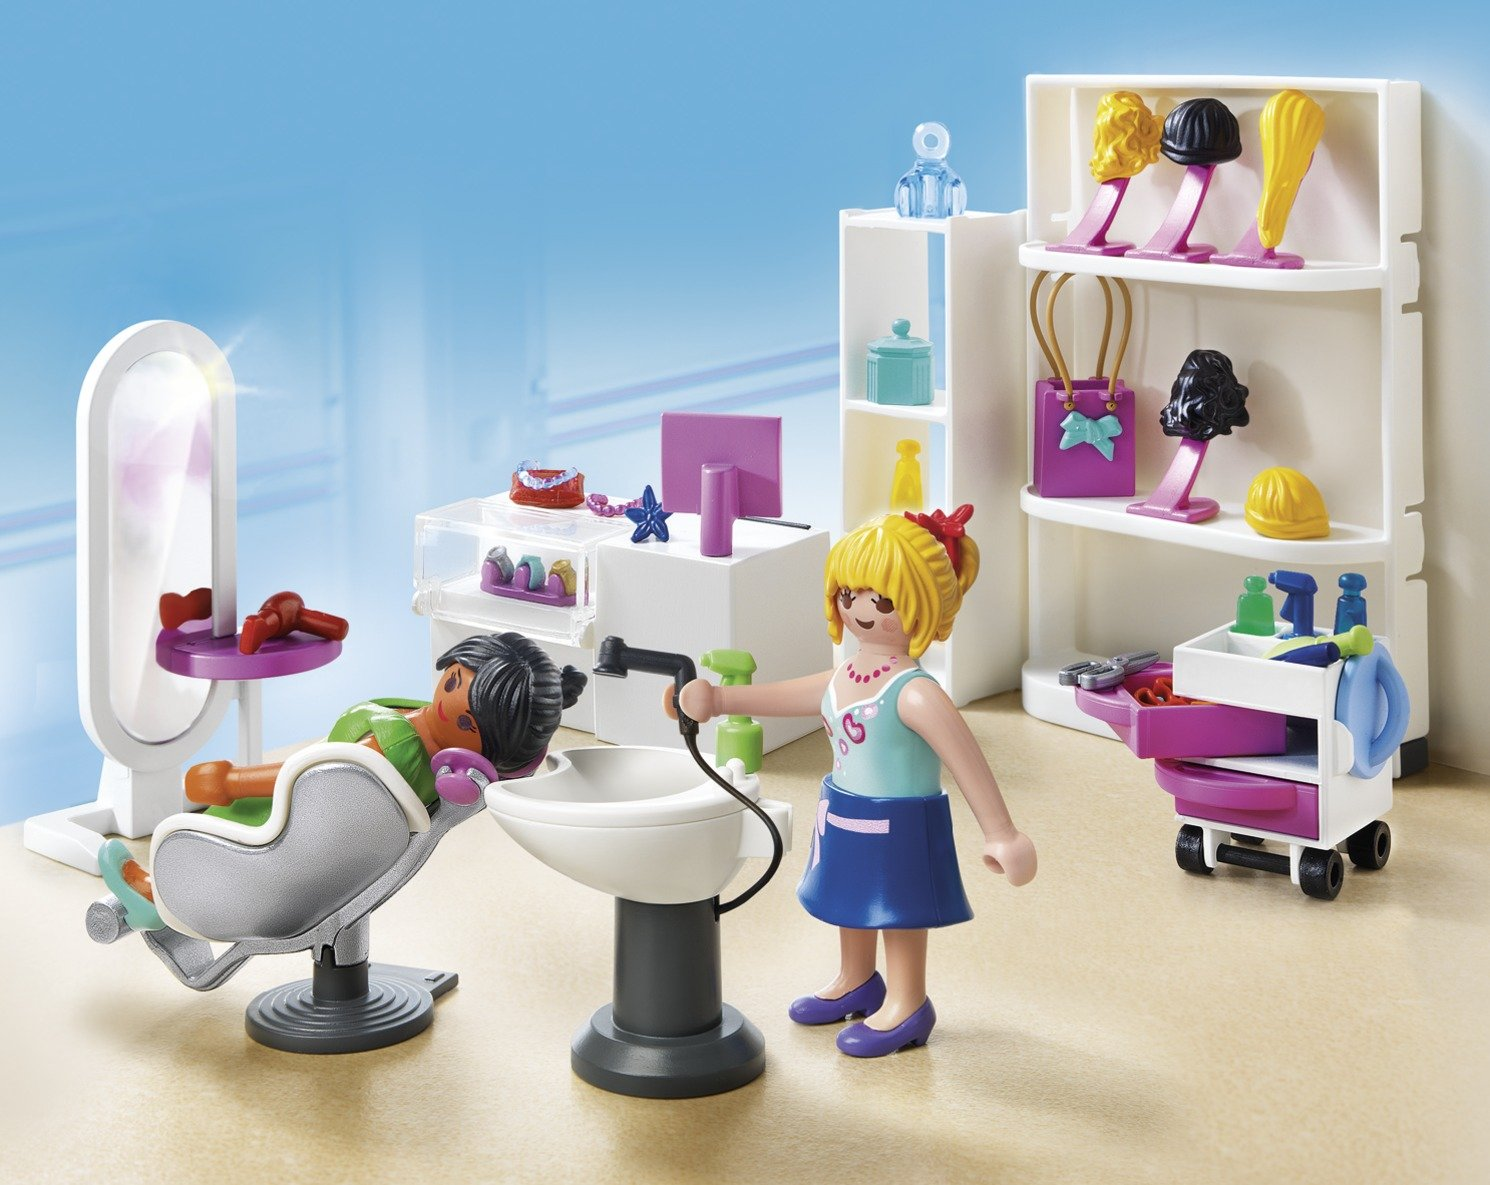 Playmobil   5487   figurine   salon de beauté: amazon.fr: jeux et ...